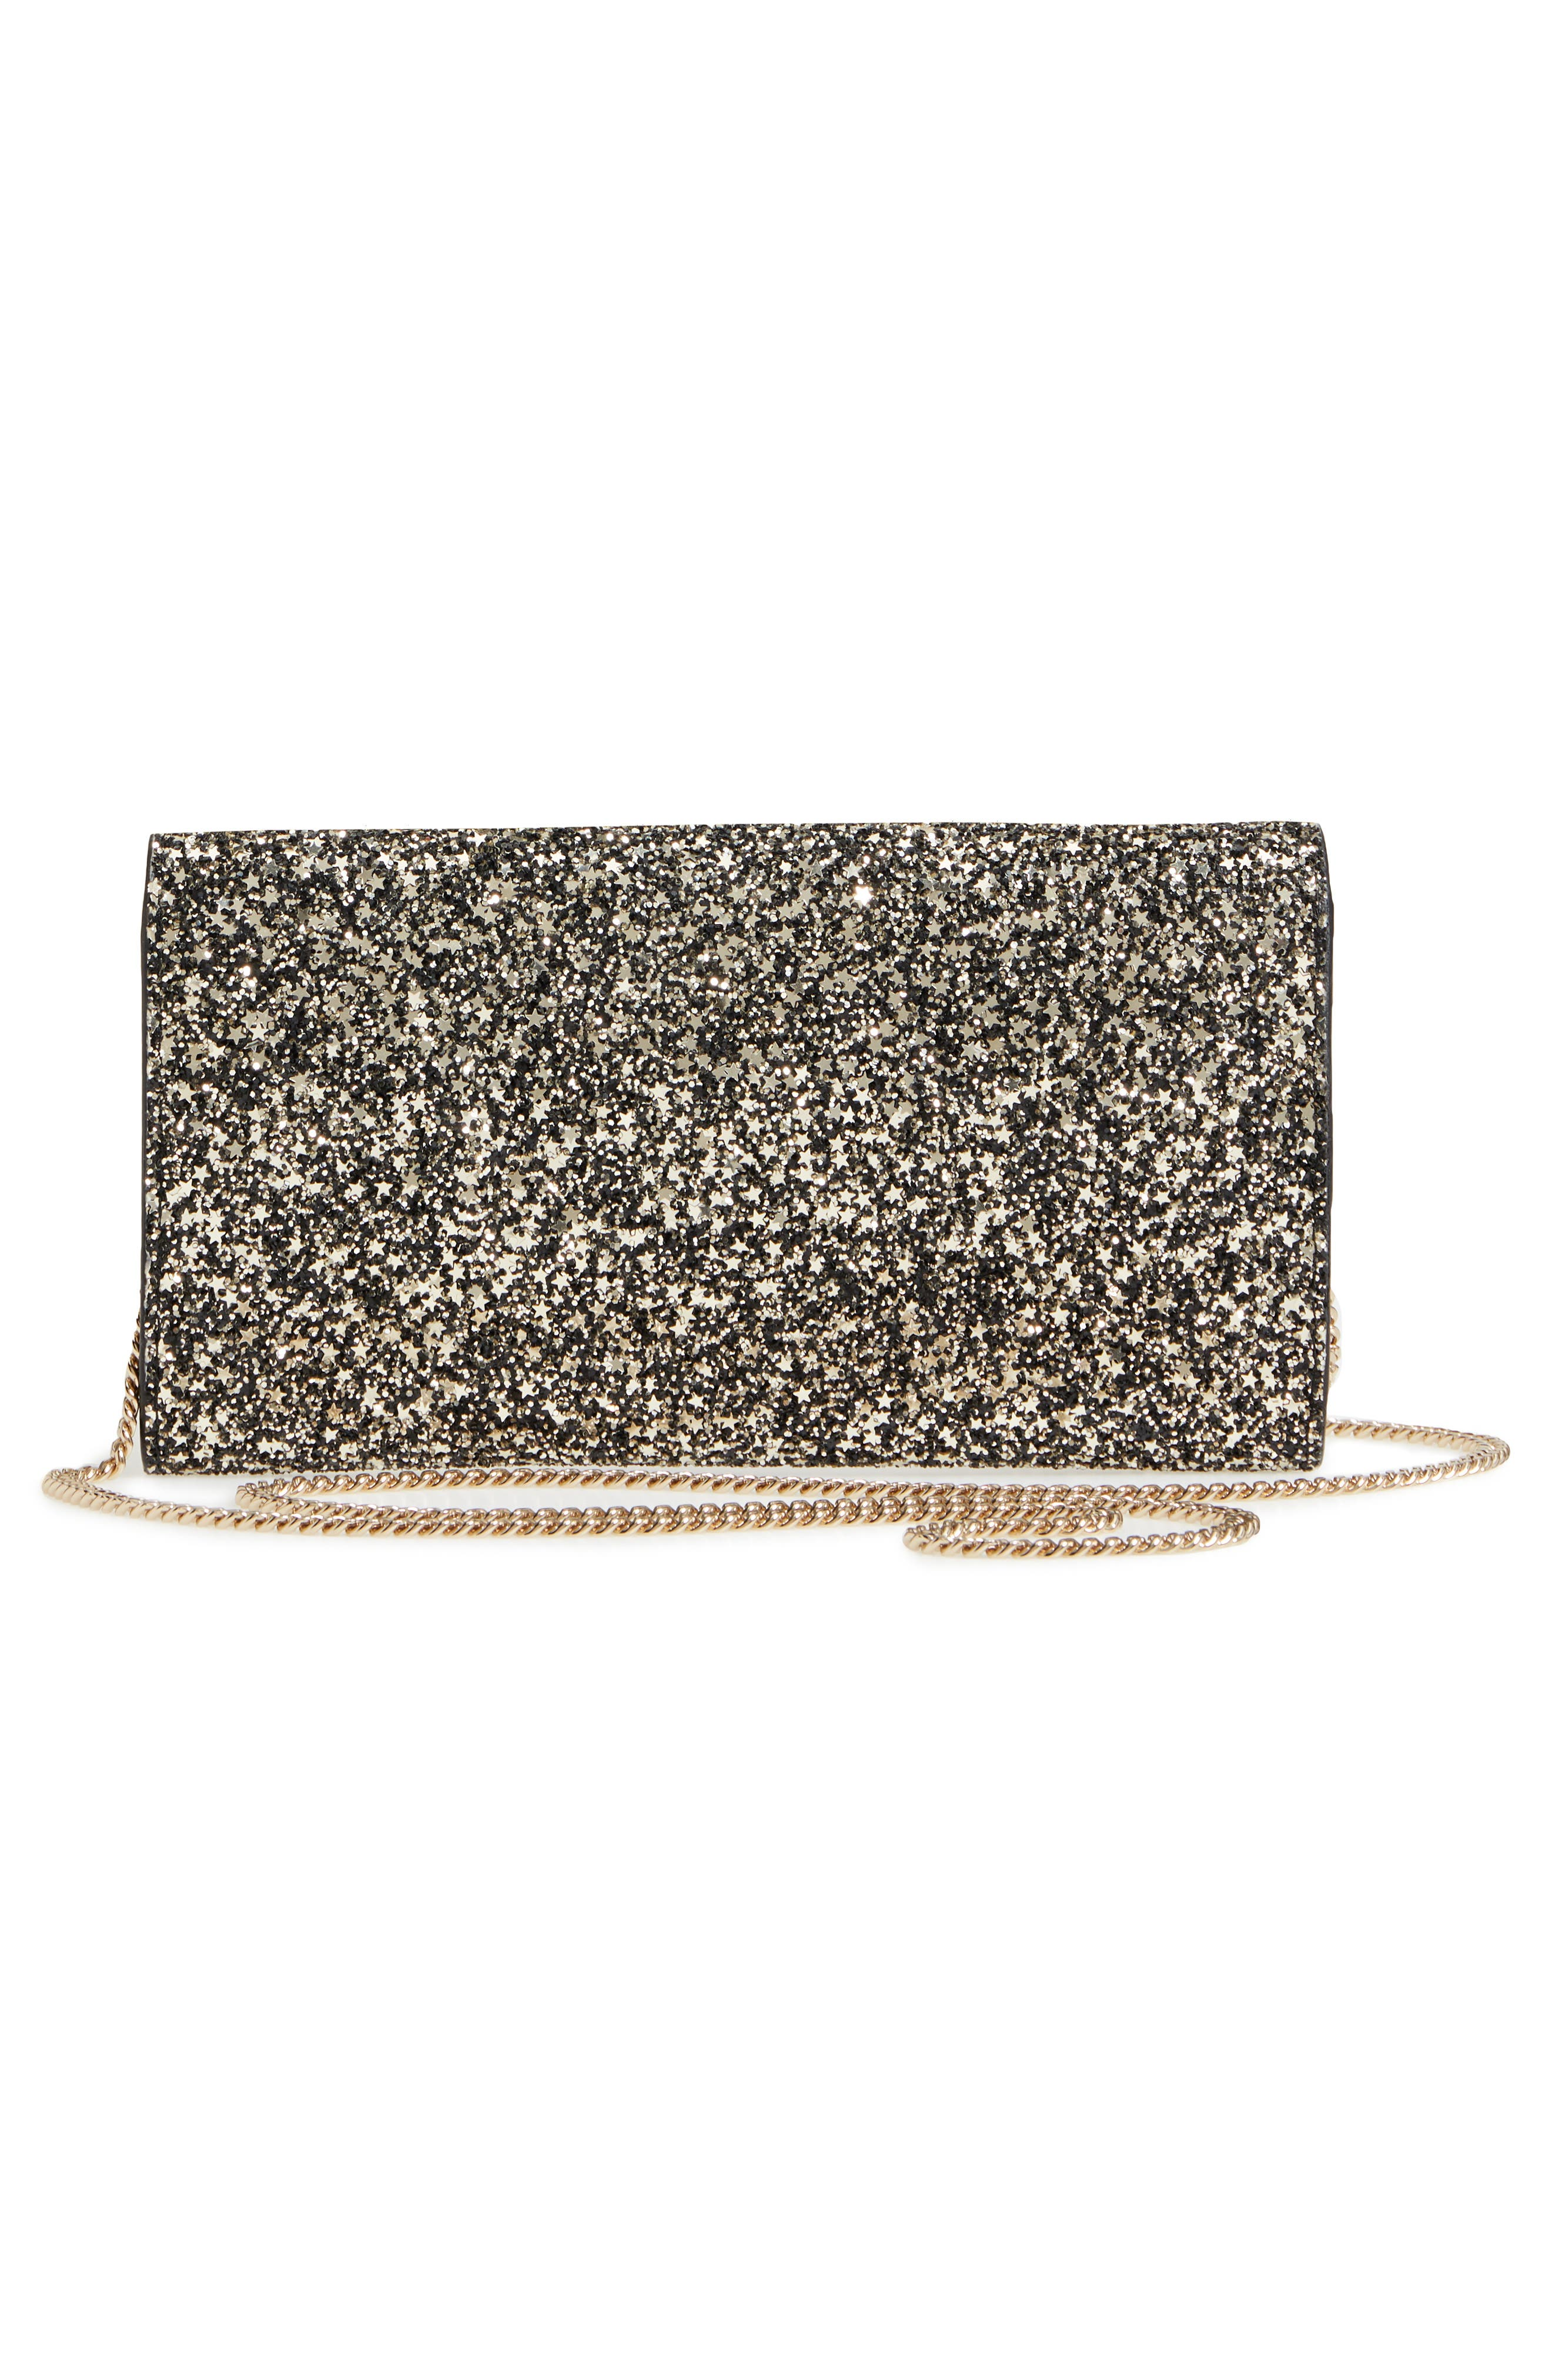 Emmie Star Glitter Clutch,                             Alternate thumbnail 3, color,                             GOLD MIX